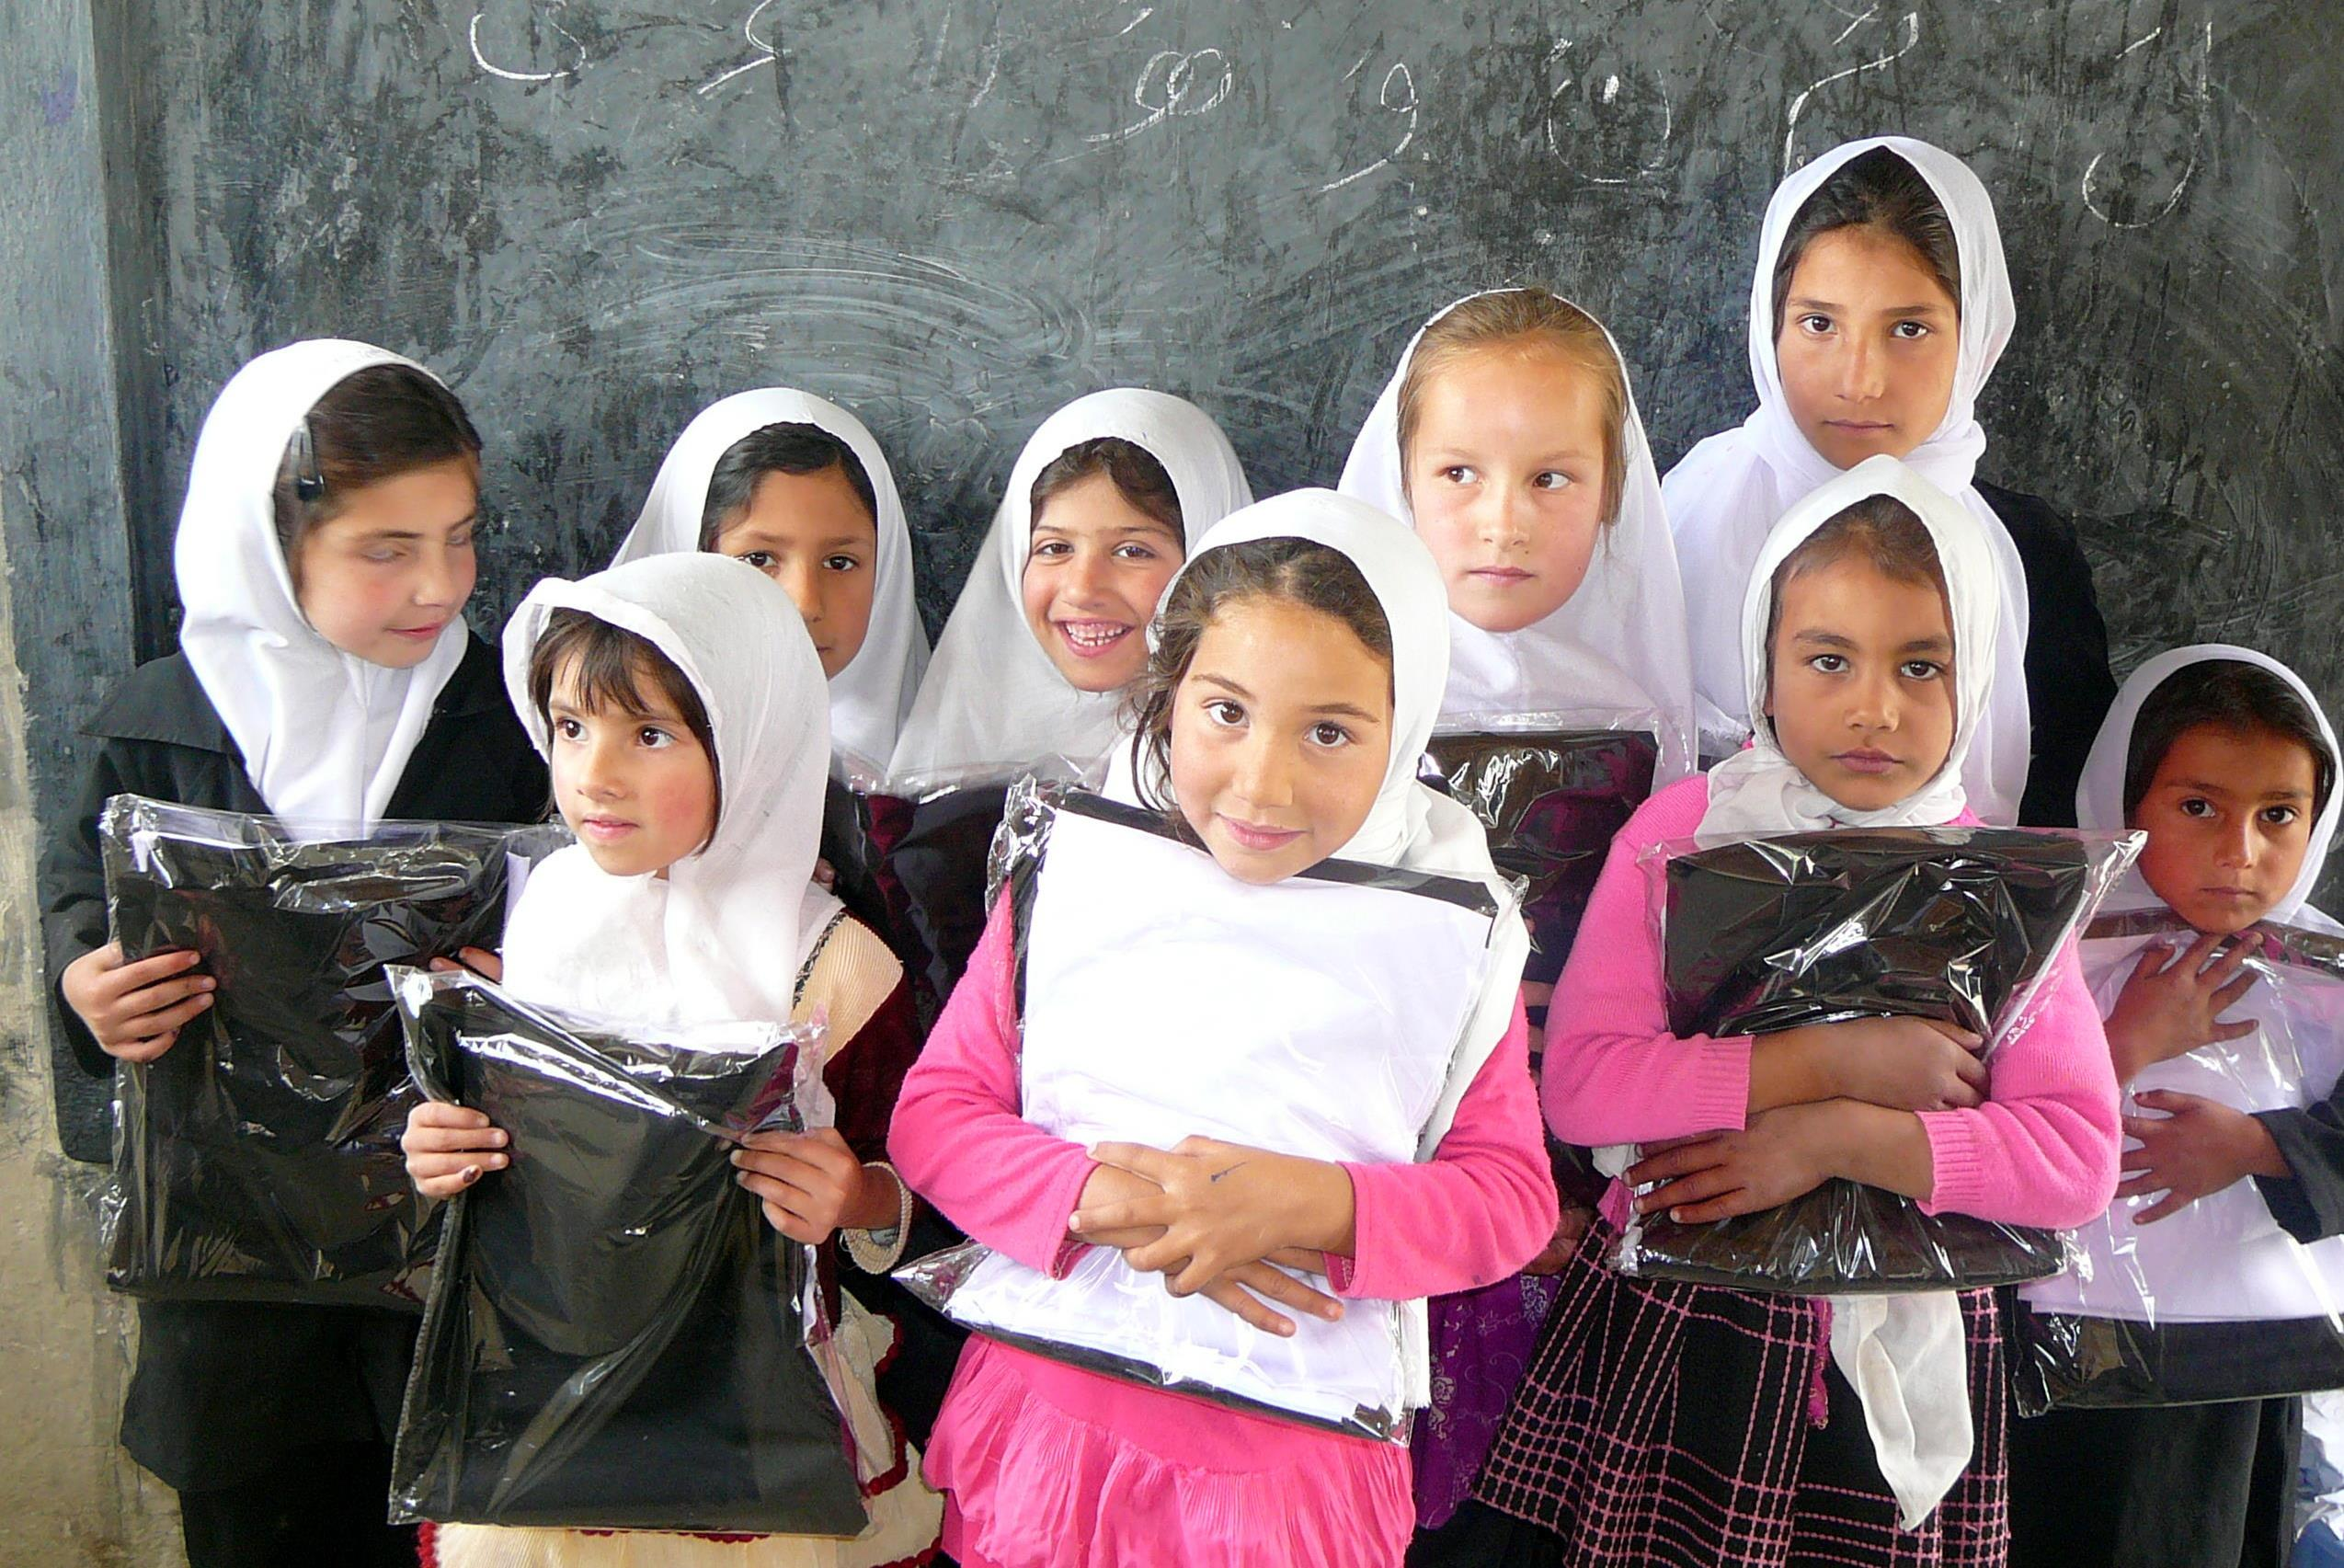 photograph of girl class in the school